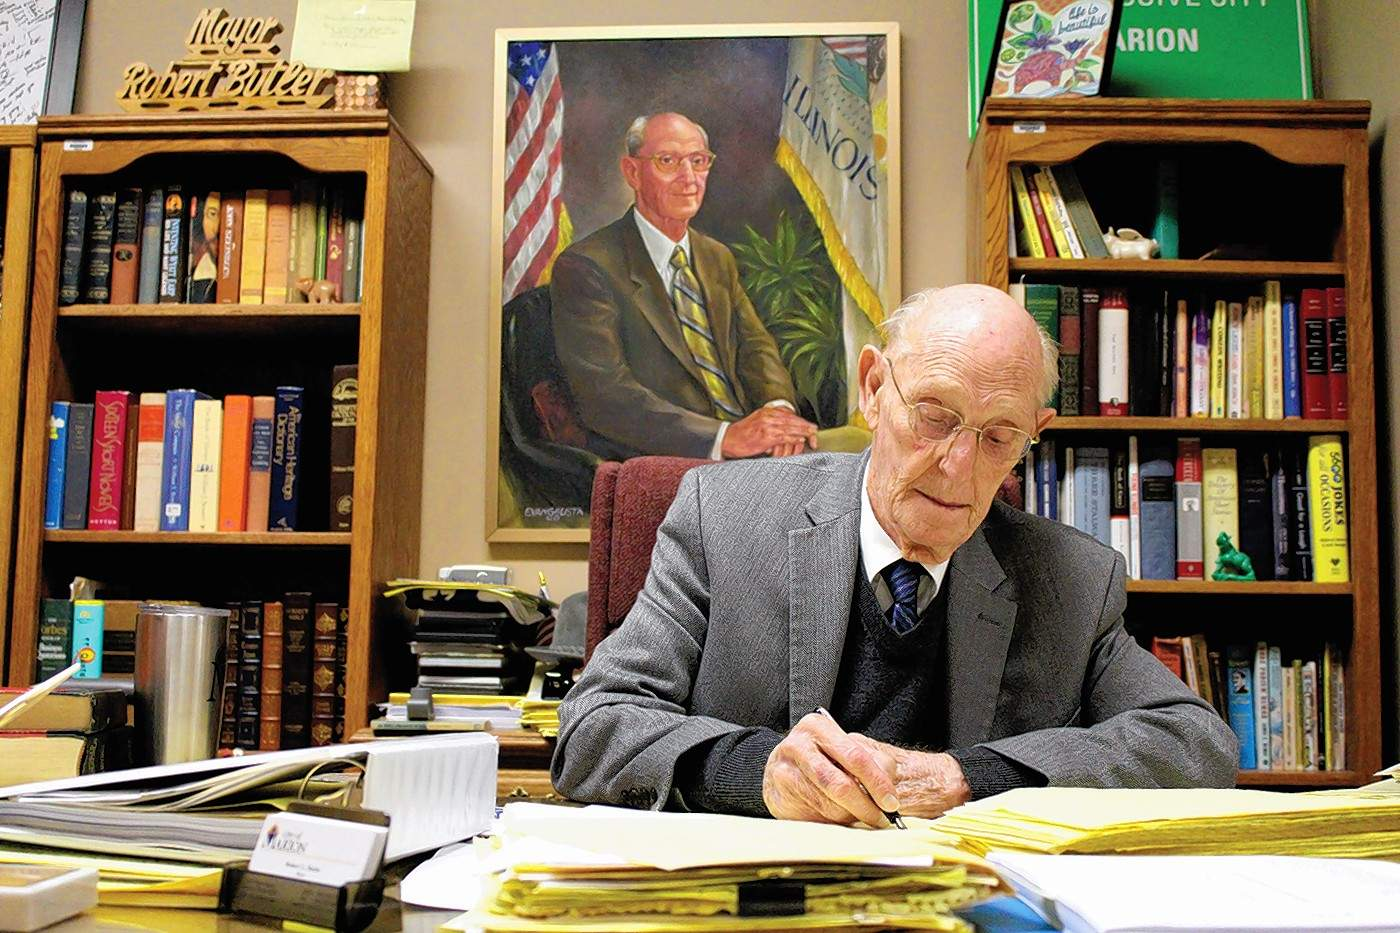 """Marion Mayor Robert """"Bob"""" Butler signs a city proclamation. Butler is one of the longest-serving mayors in U.S. hstory, in office since 1963."""